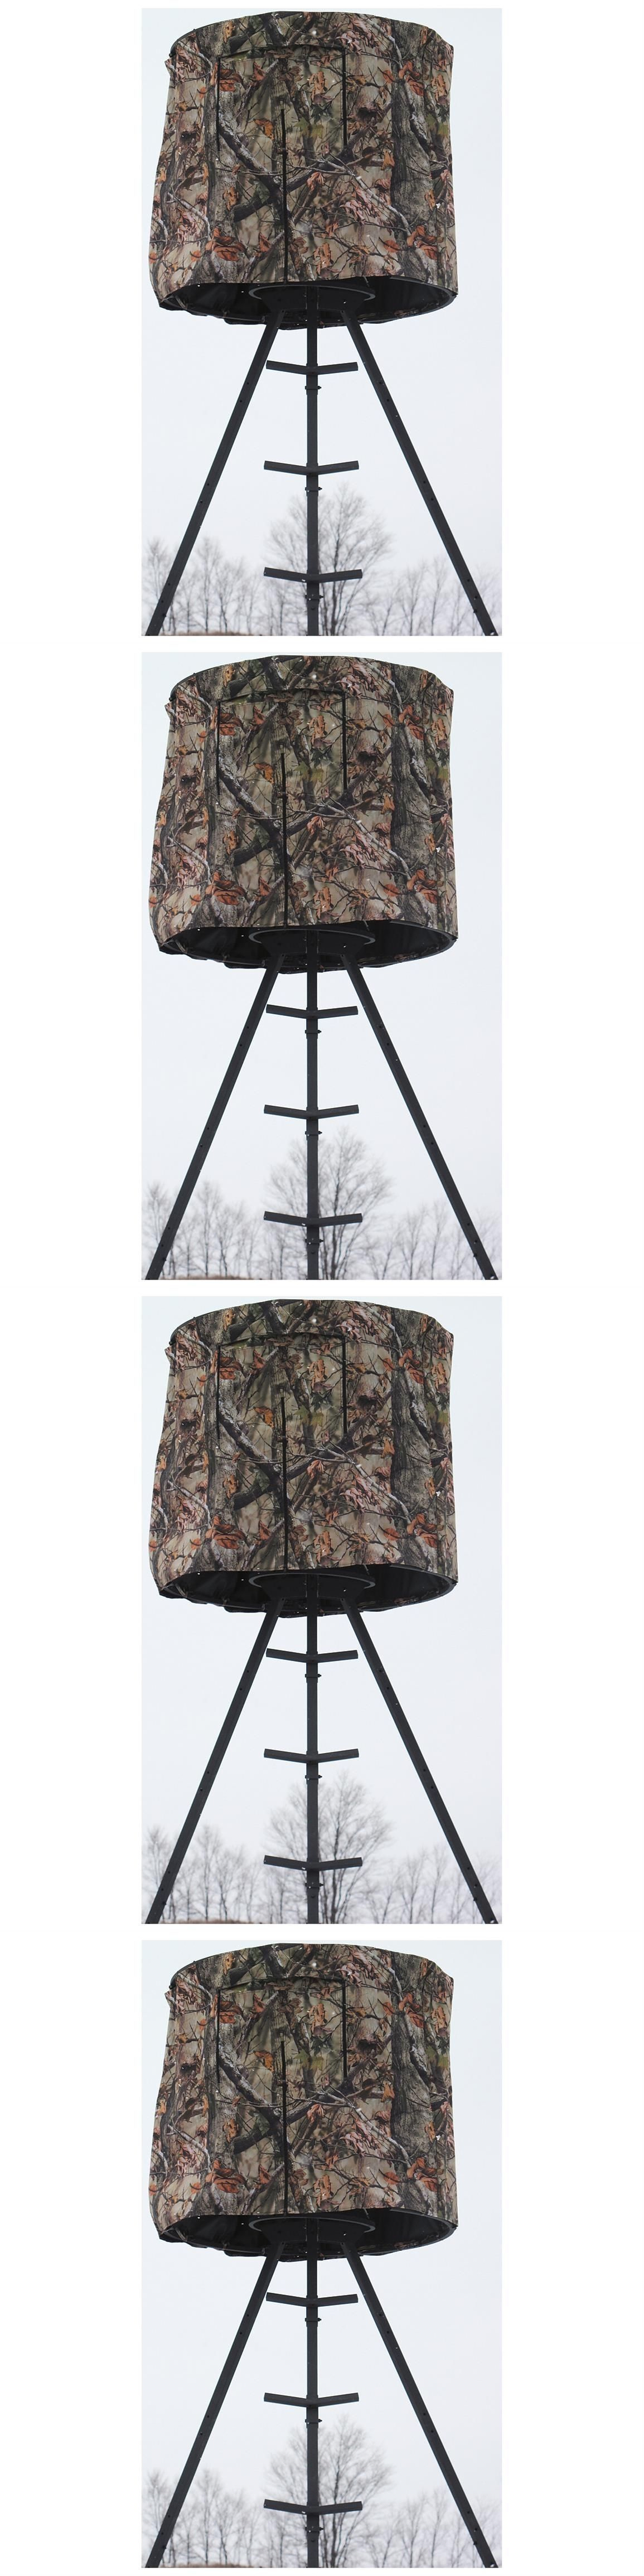 several img from sale smoky bale we carry stands redneck as tower shooting sports well for shooter with deer valley muddy hay treestands plastic maverick blinds box and hunting models inc of